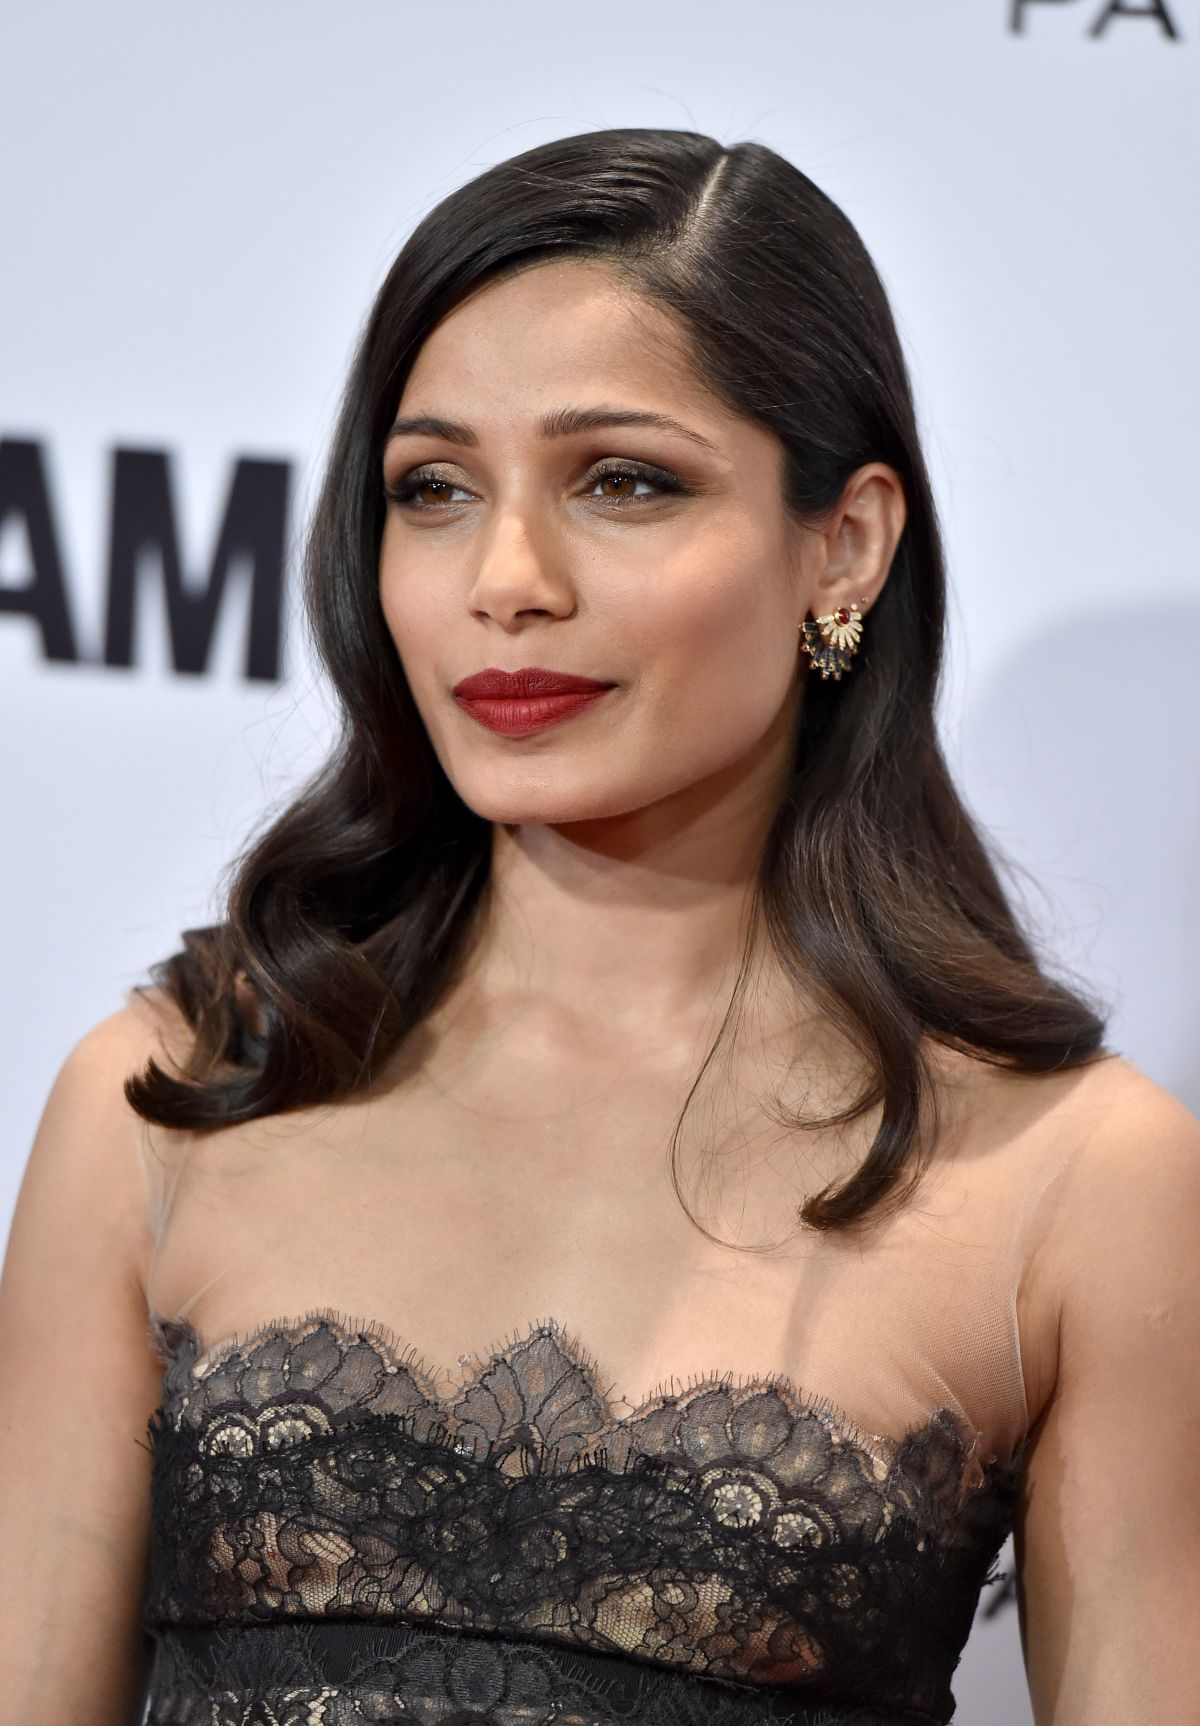 FREIDA PINTO at Glamour Women of the Year Awards in Los Angeles 11/14/2016 - HawtCelebs - HawtCelebs Freida Pinto